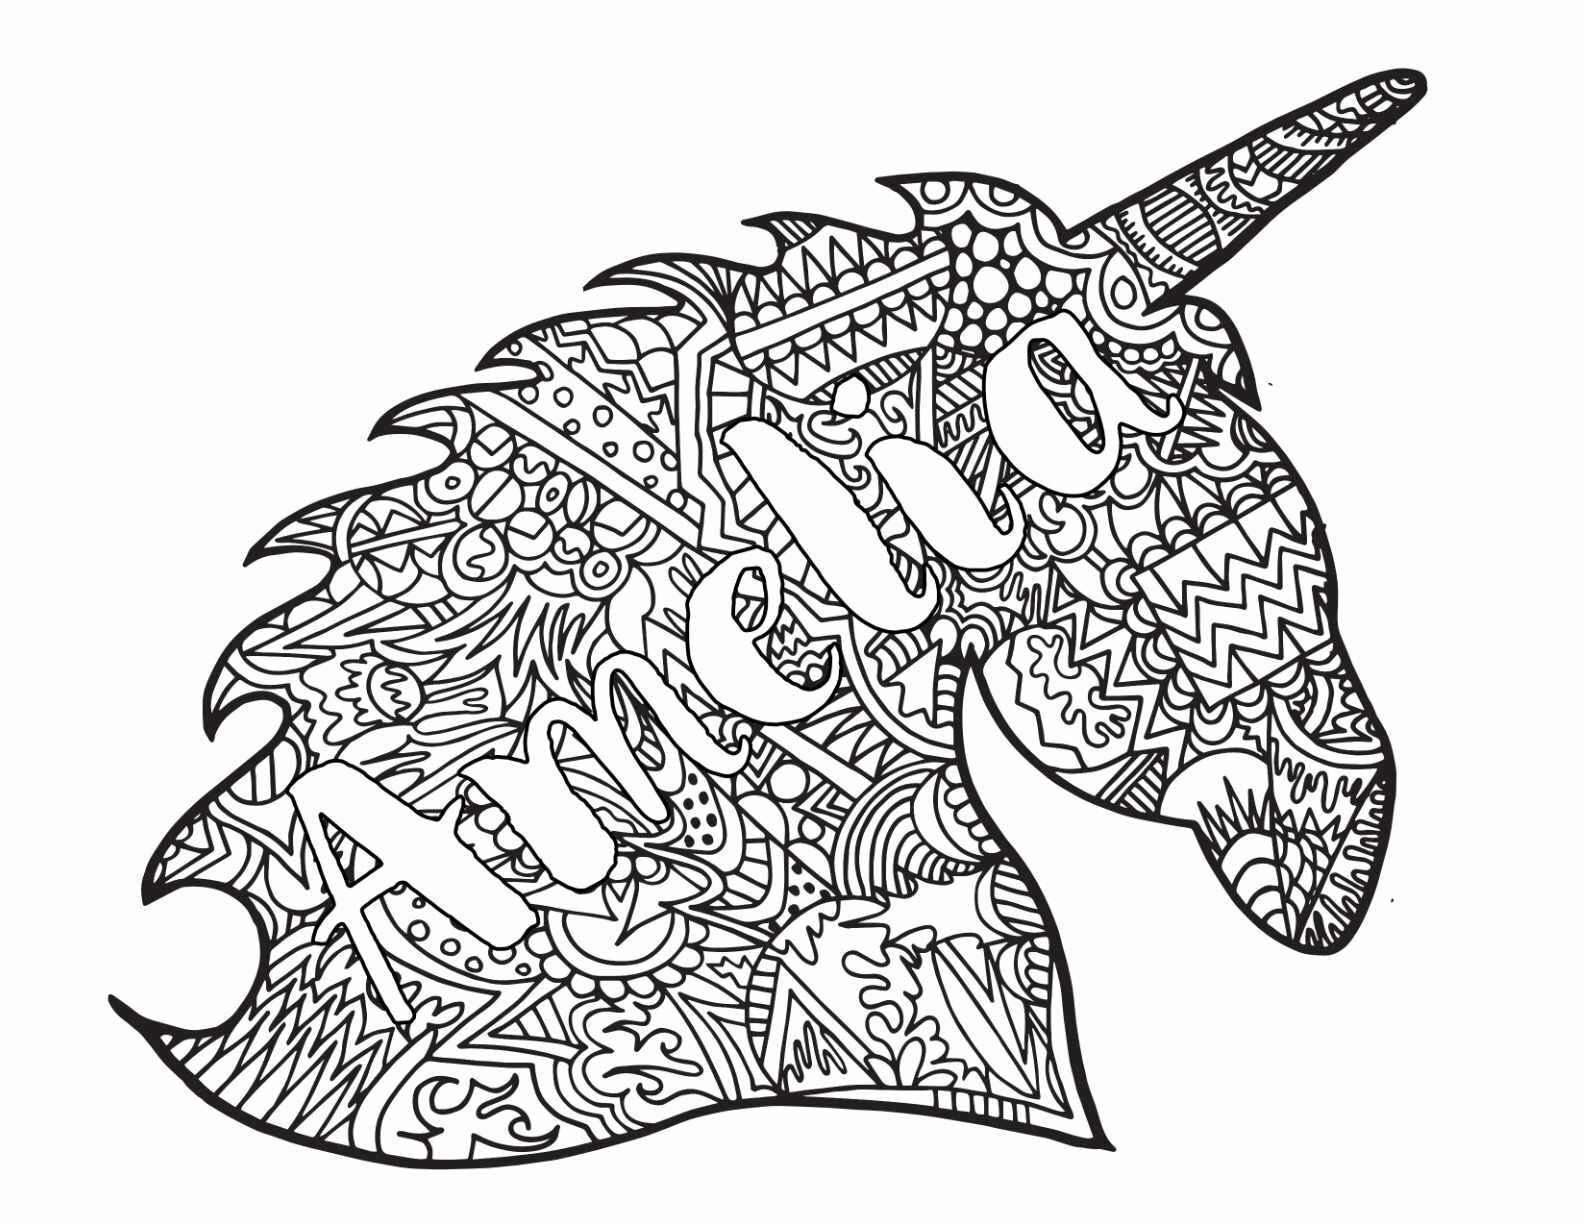 2 Amelia Free Coloring Pages Uicorn Classic Doodle Stevie Doodles Unicorn Coloring Pages Free Coloring Pages Free Kids Coloring Pages